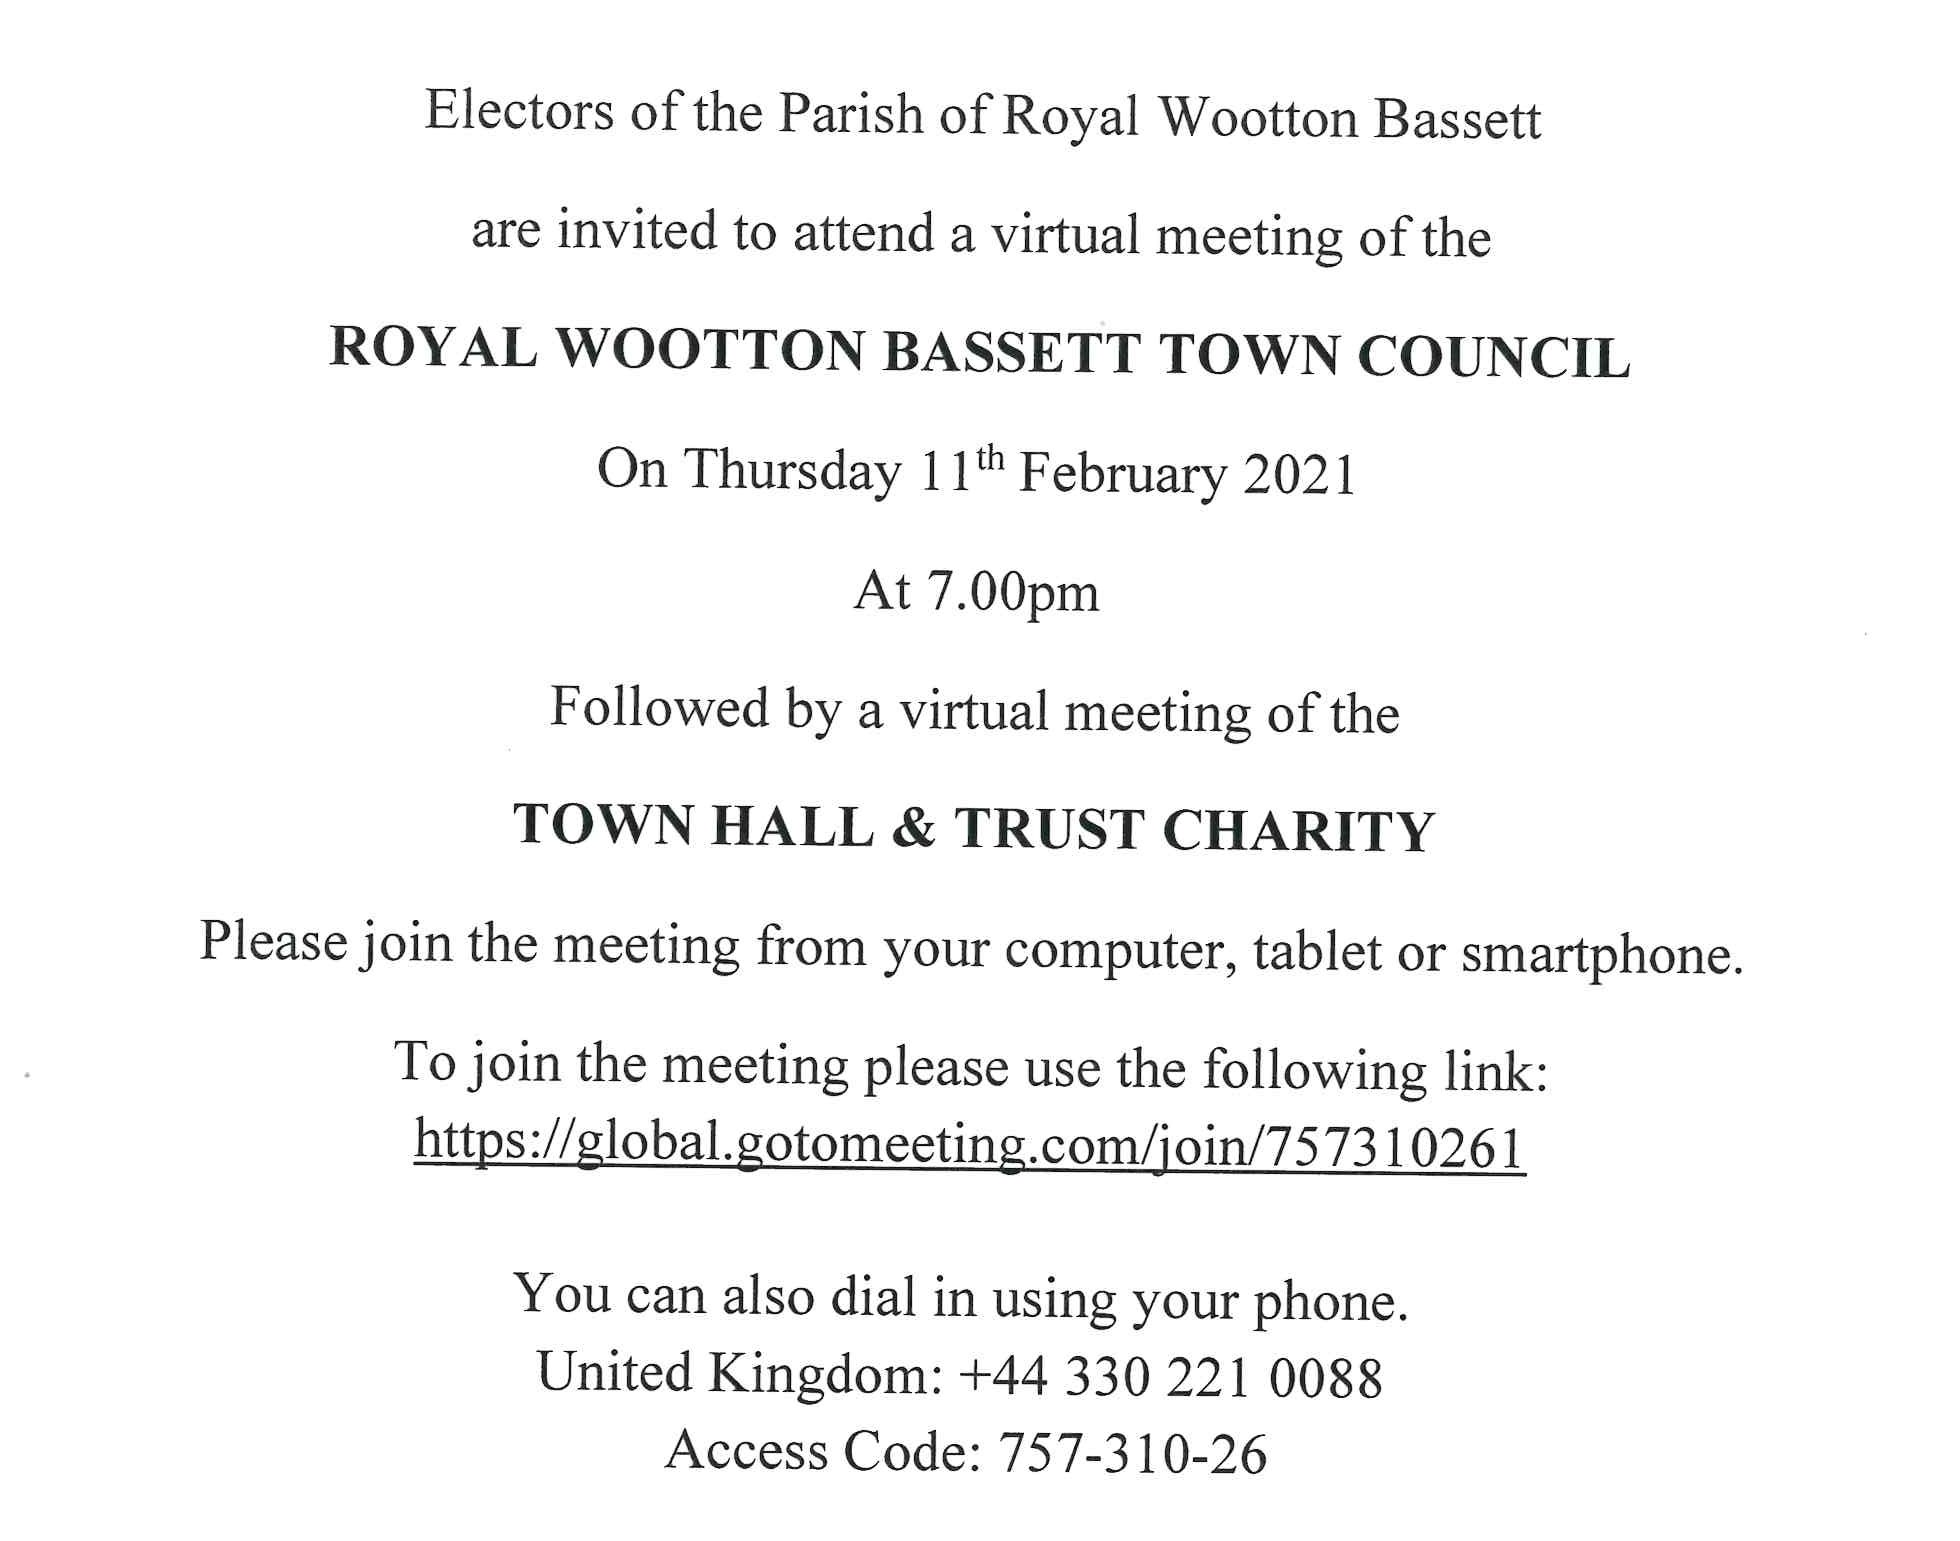 Full Council and Town Hall and Trust Charity Meetings - Thursday 11th February 2021